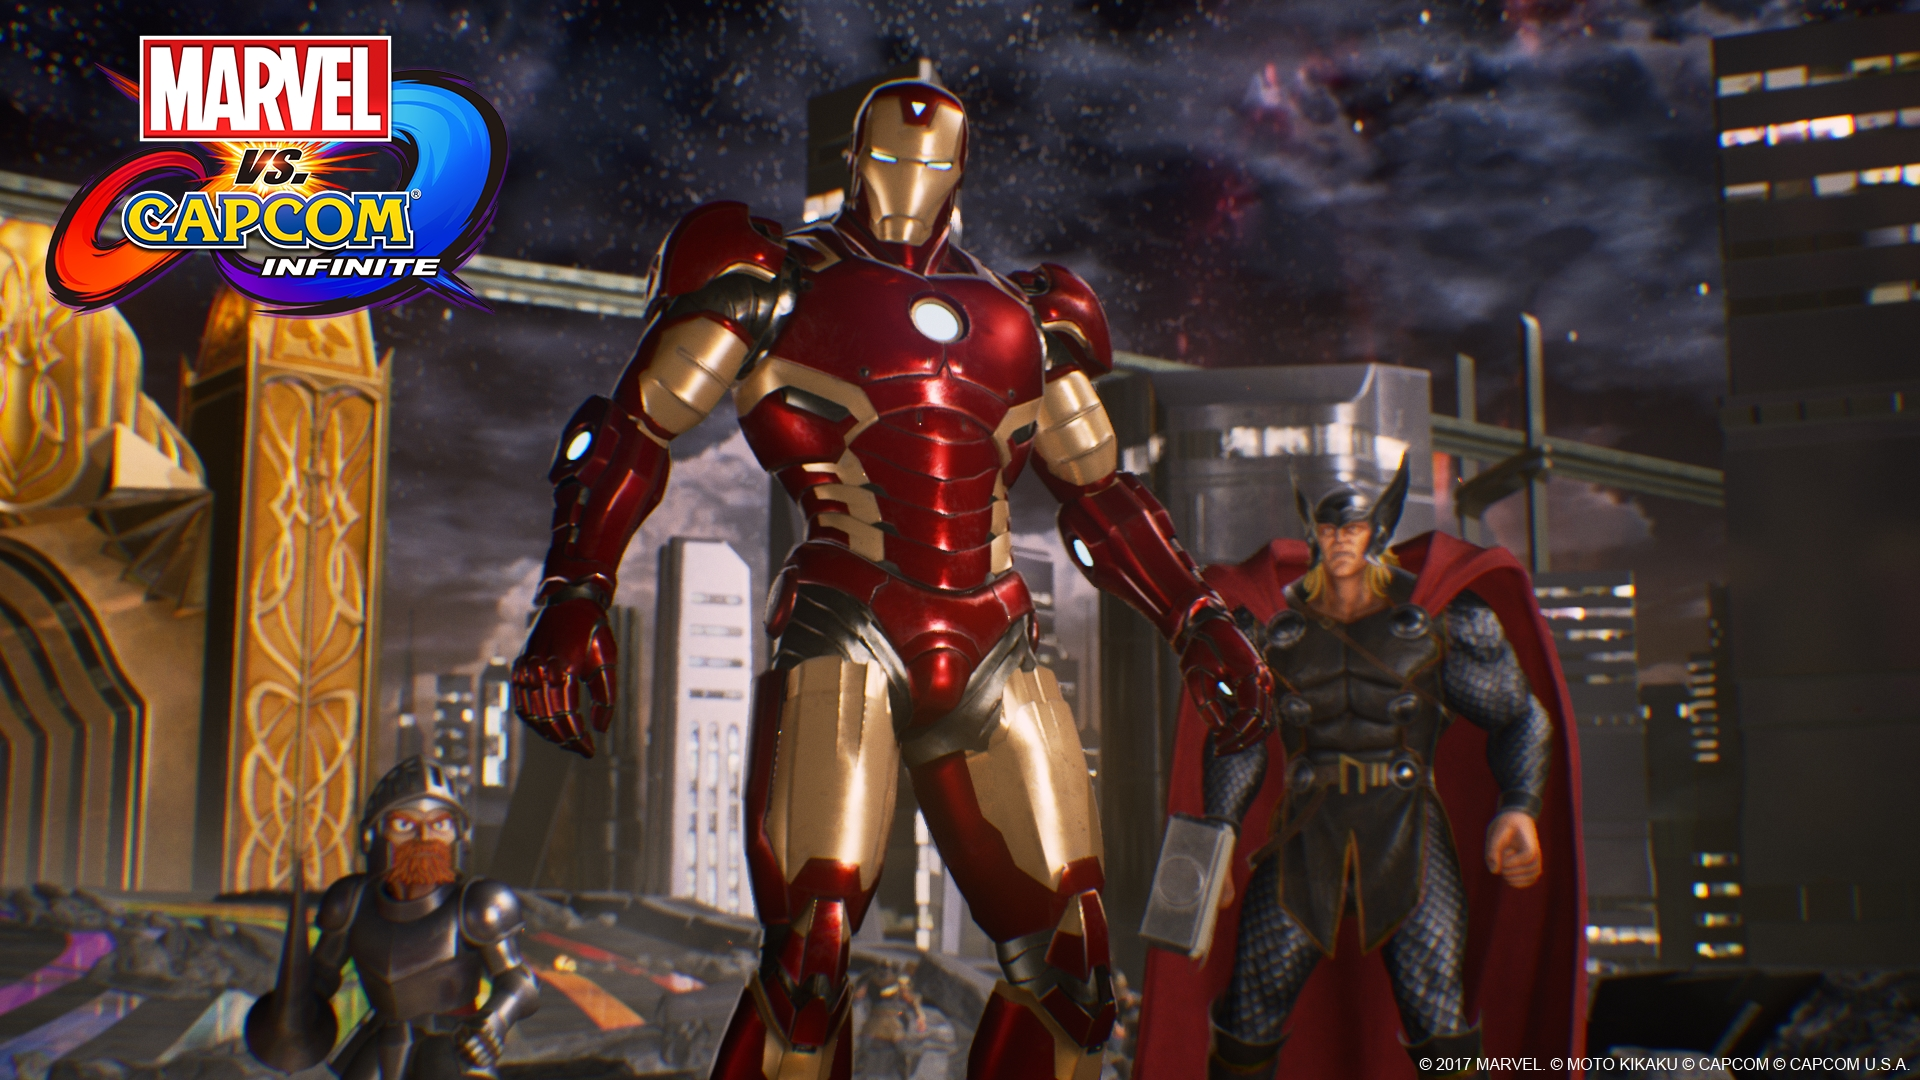 Marvel Vs. Capcom: Infinite (PS4) - Iron Man meets Arthur from Ghosts 'N Goblins